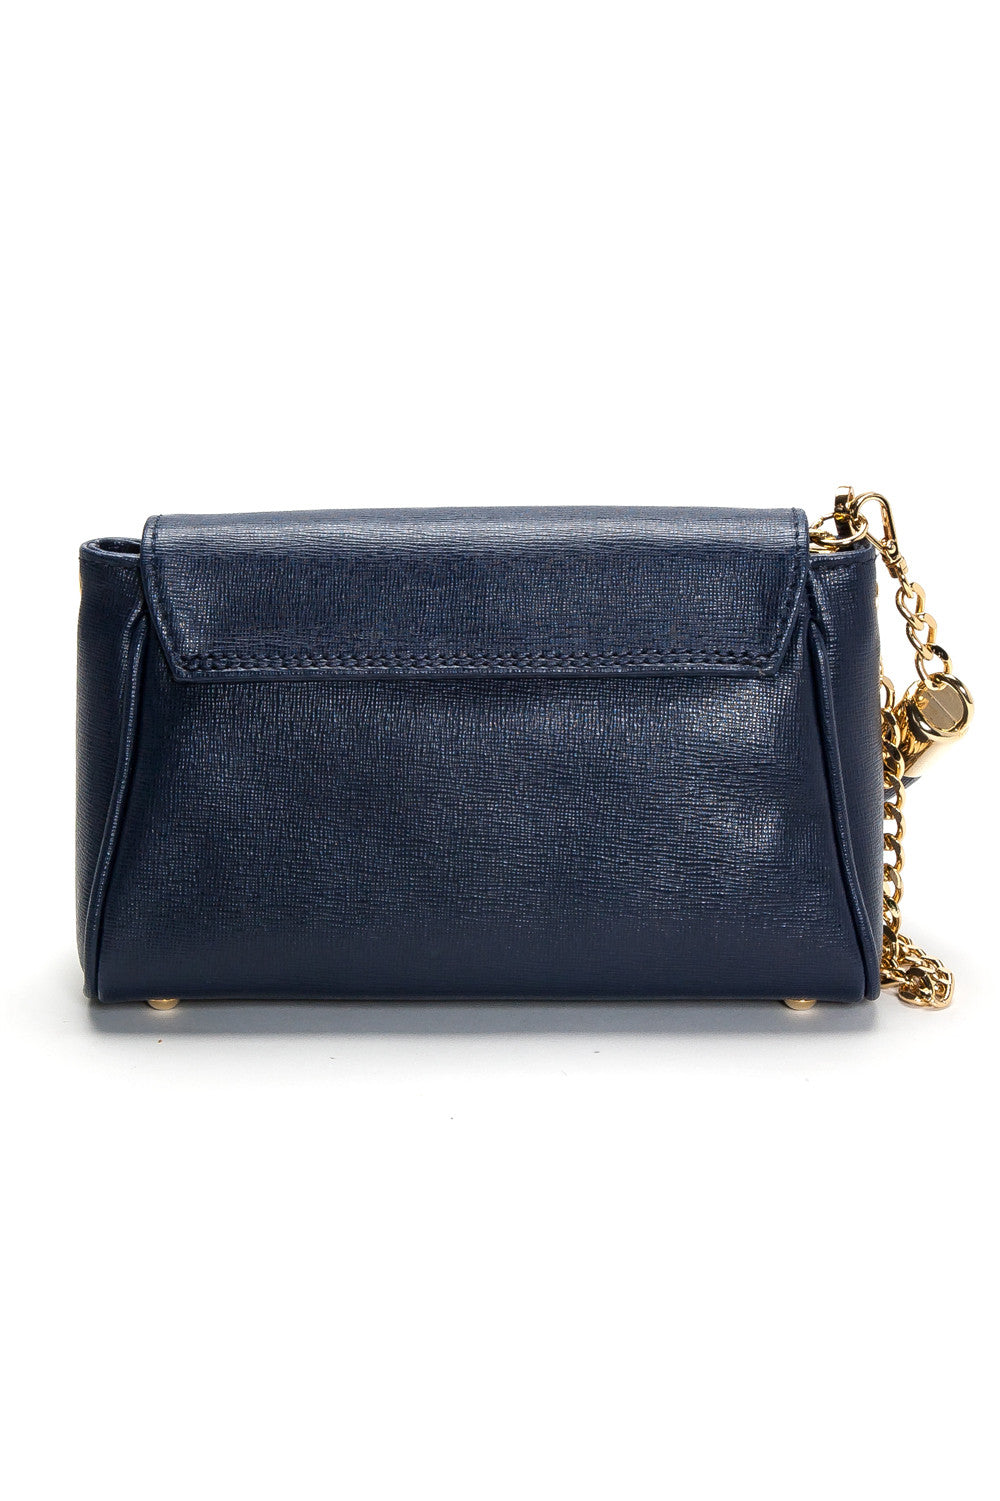 'Emmy' Navy Saffiano Leather Convertible Clutch | Back View| Mel Boteri Handbags